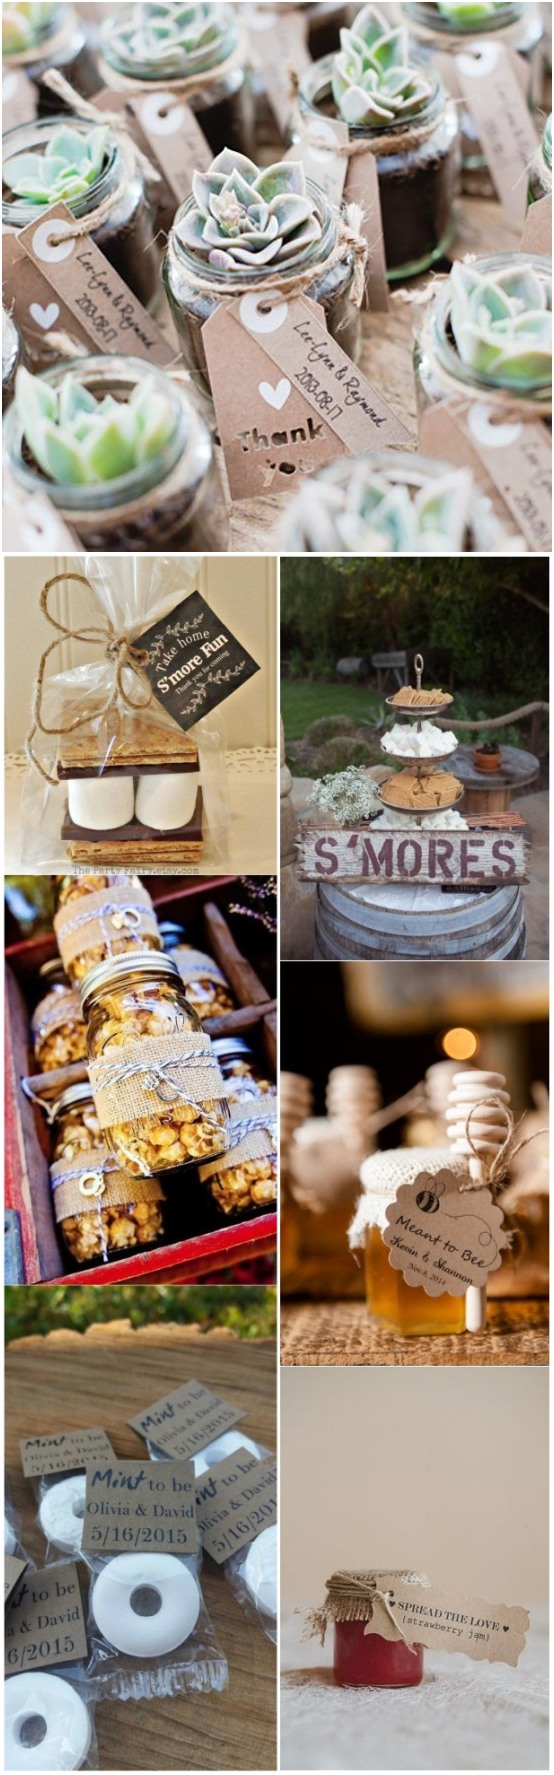 Vintage rustic wedding favor ideas do it yourself